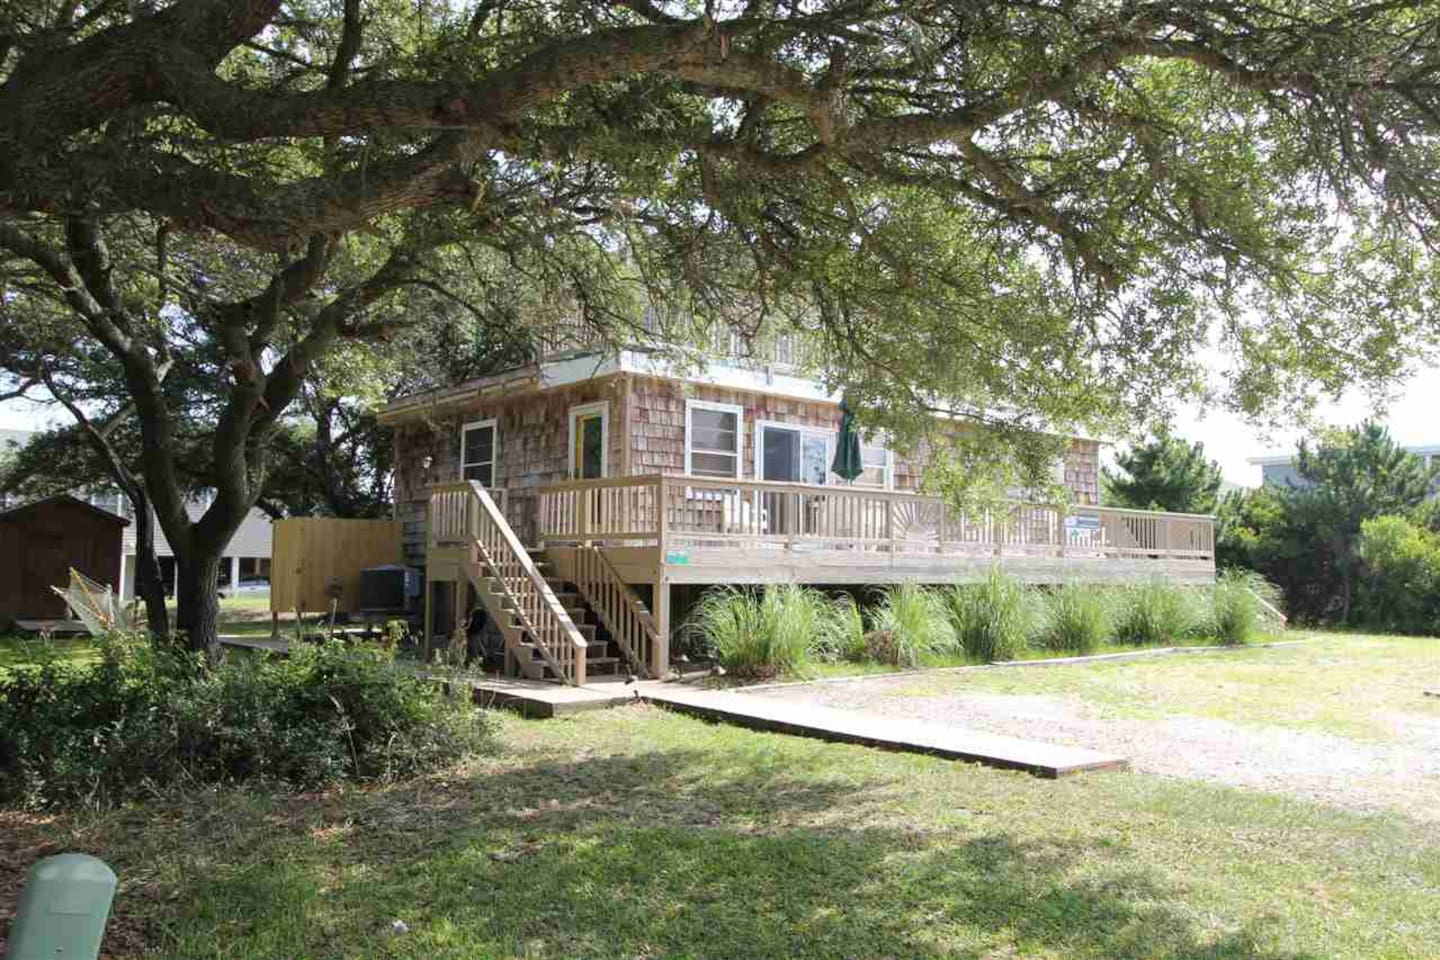 Century-old live oaks are a highlight of the community